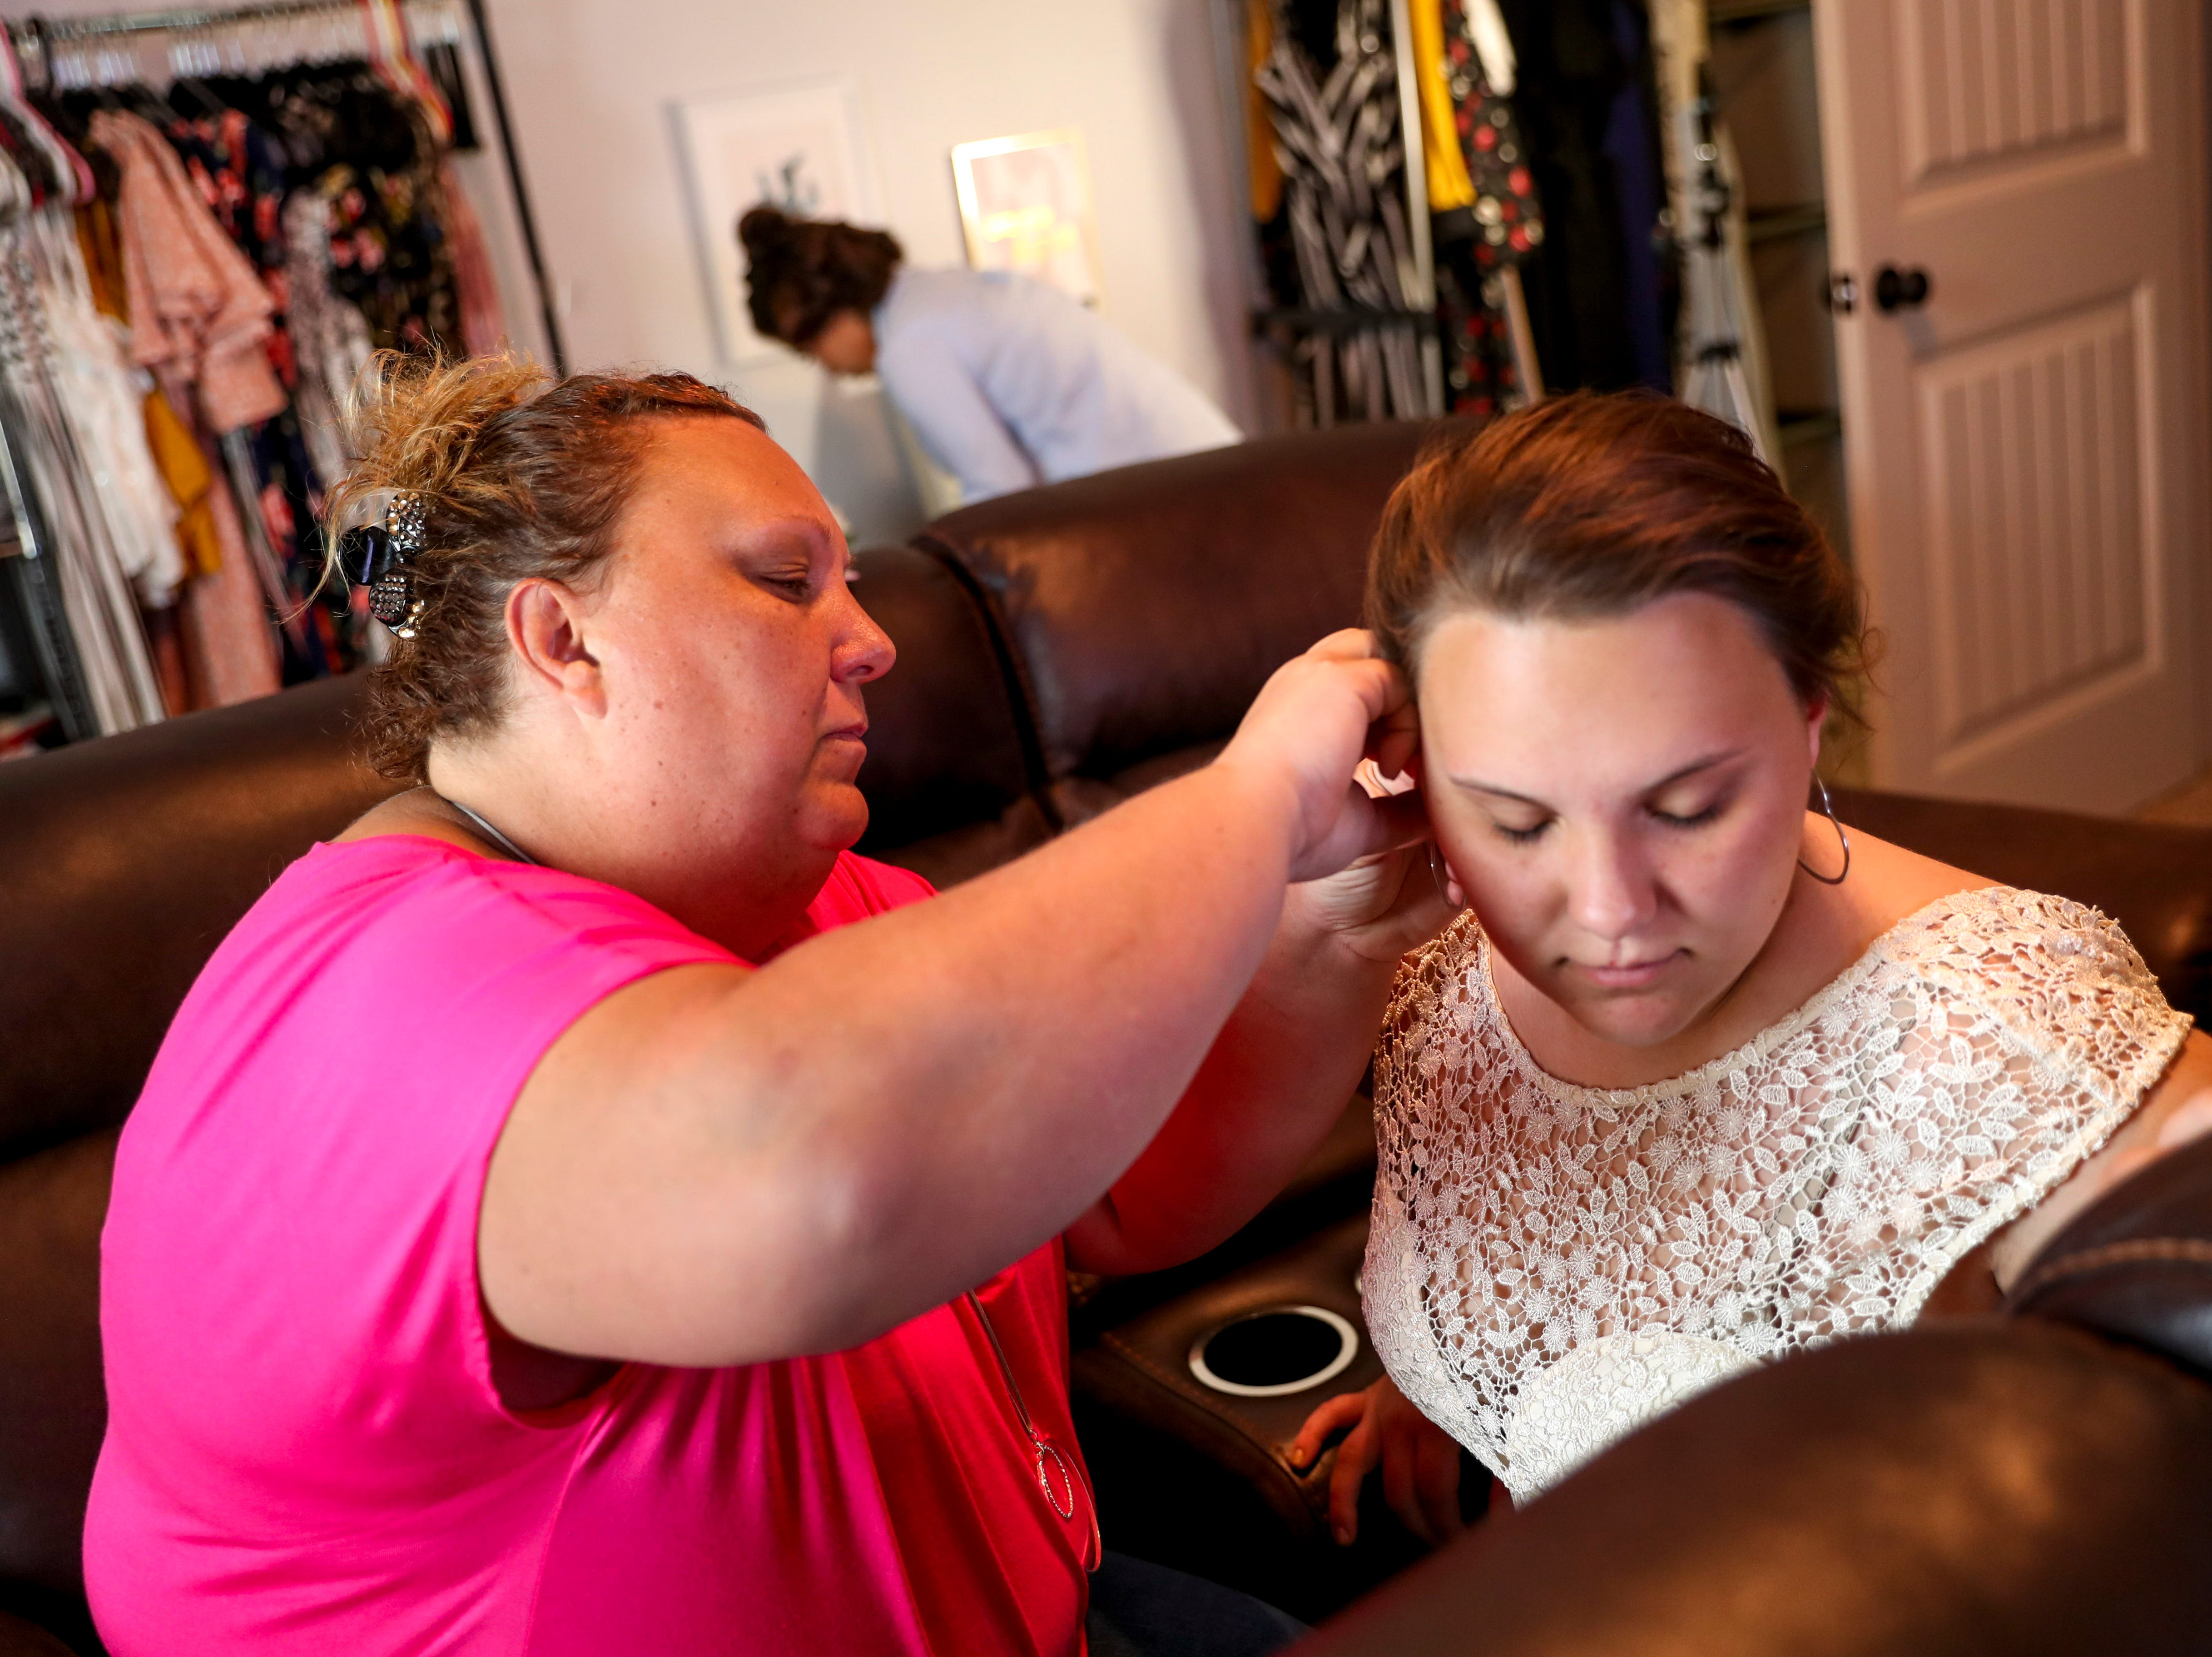 Amy Lopez sits down with her daughter Mia to put her earrings on at the Tejada household in Clarksville, Tenn., on Saturday, May 4, 2019.